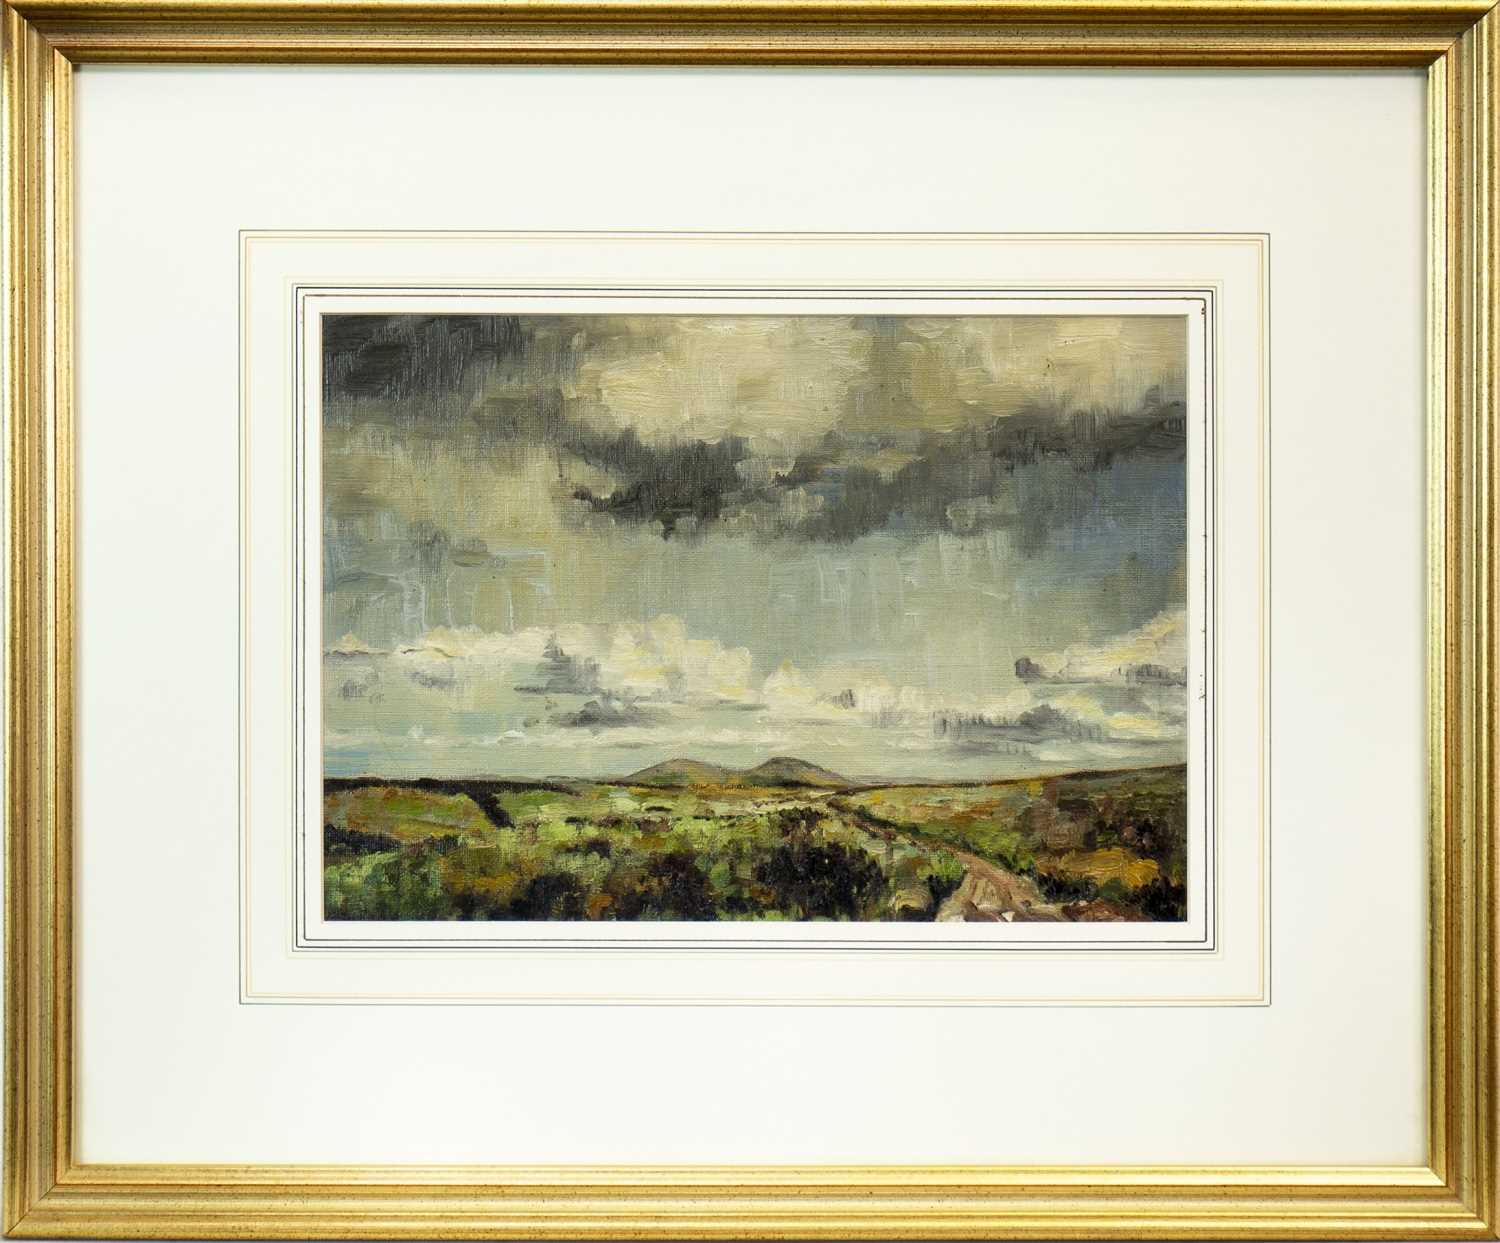 Lot 624-LANDSCAPE WITH MOUNTAINS IN THE DISTANCE